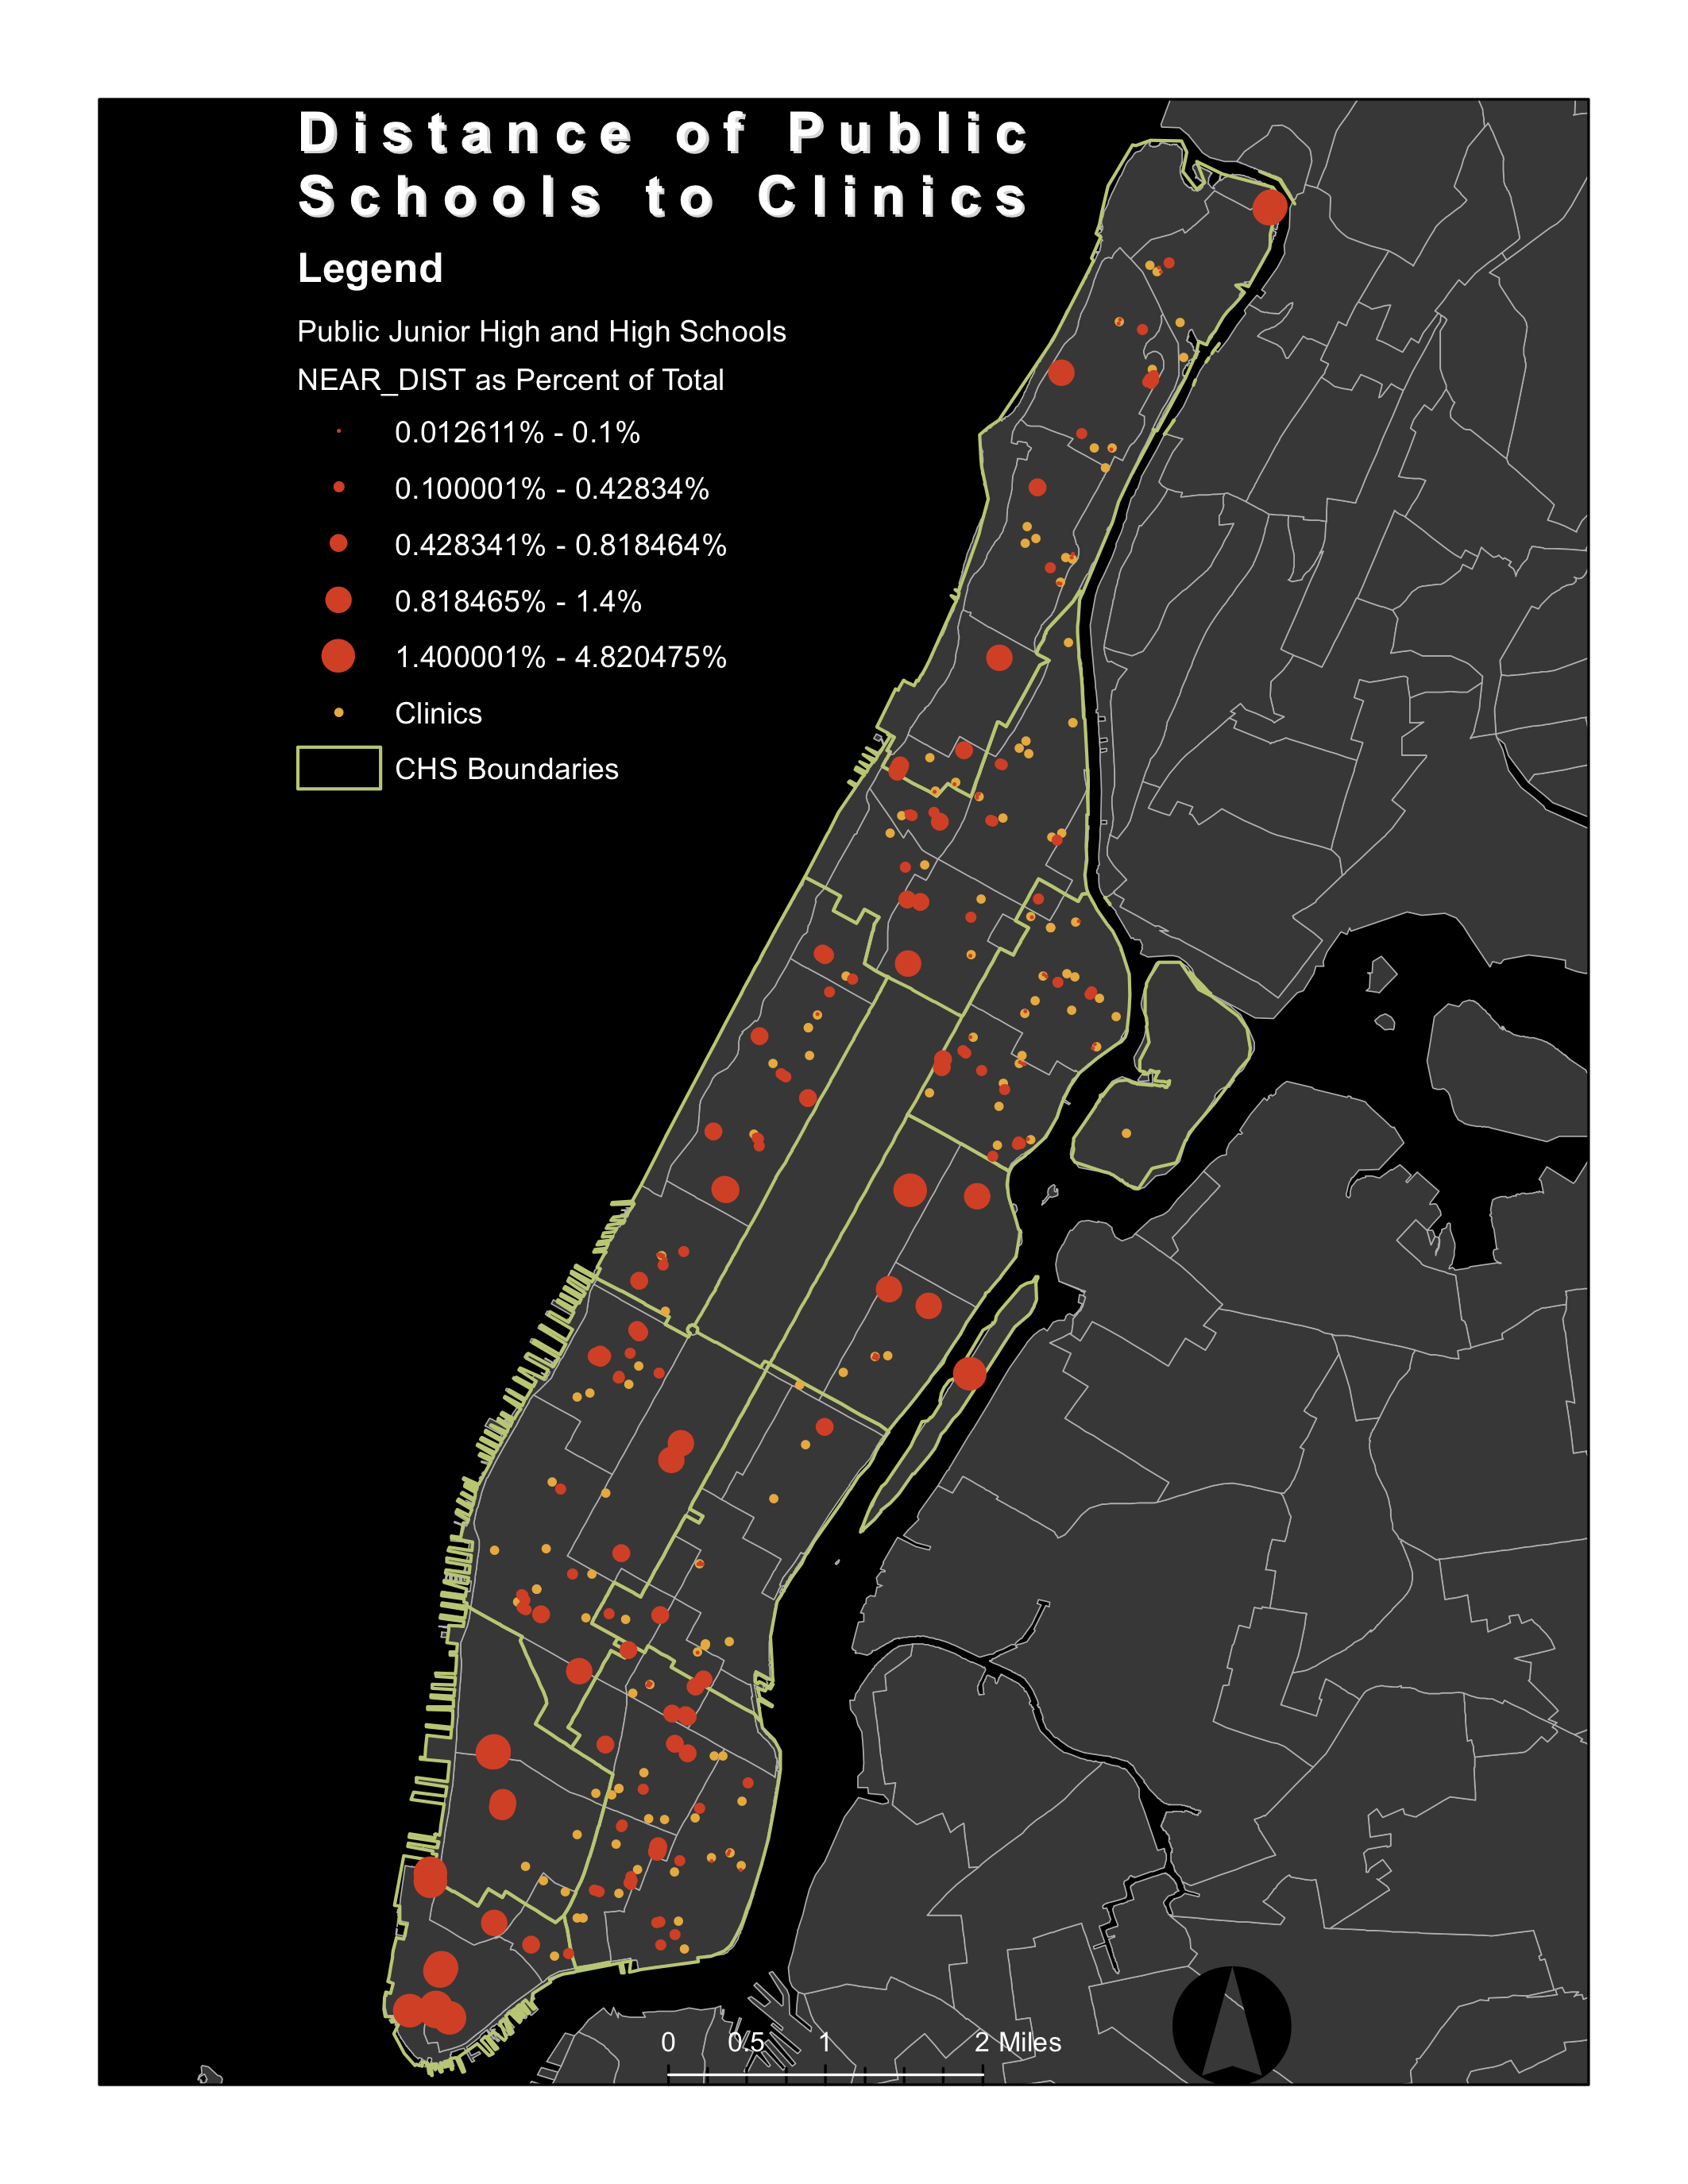 NYC Clinic Distance from Public Schools